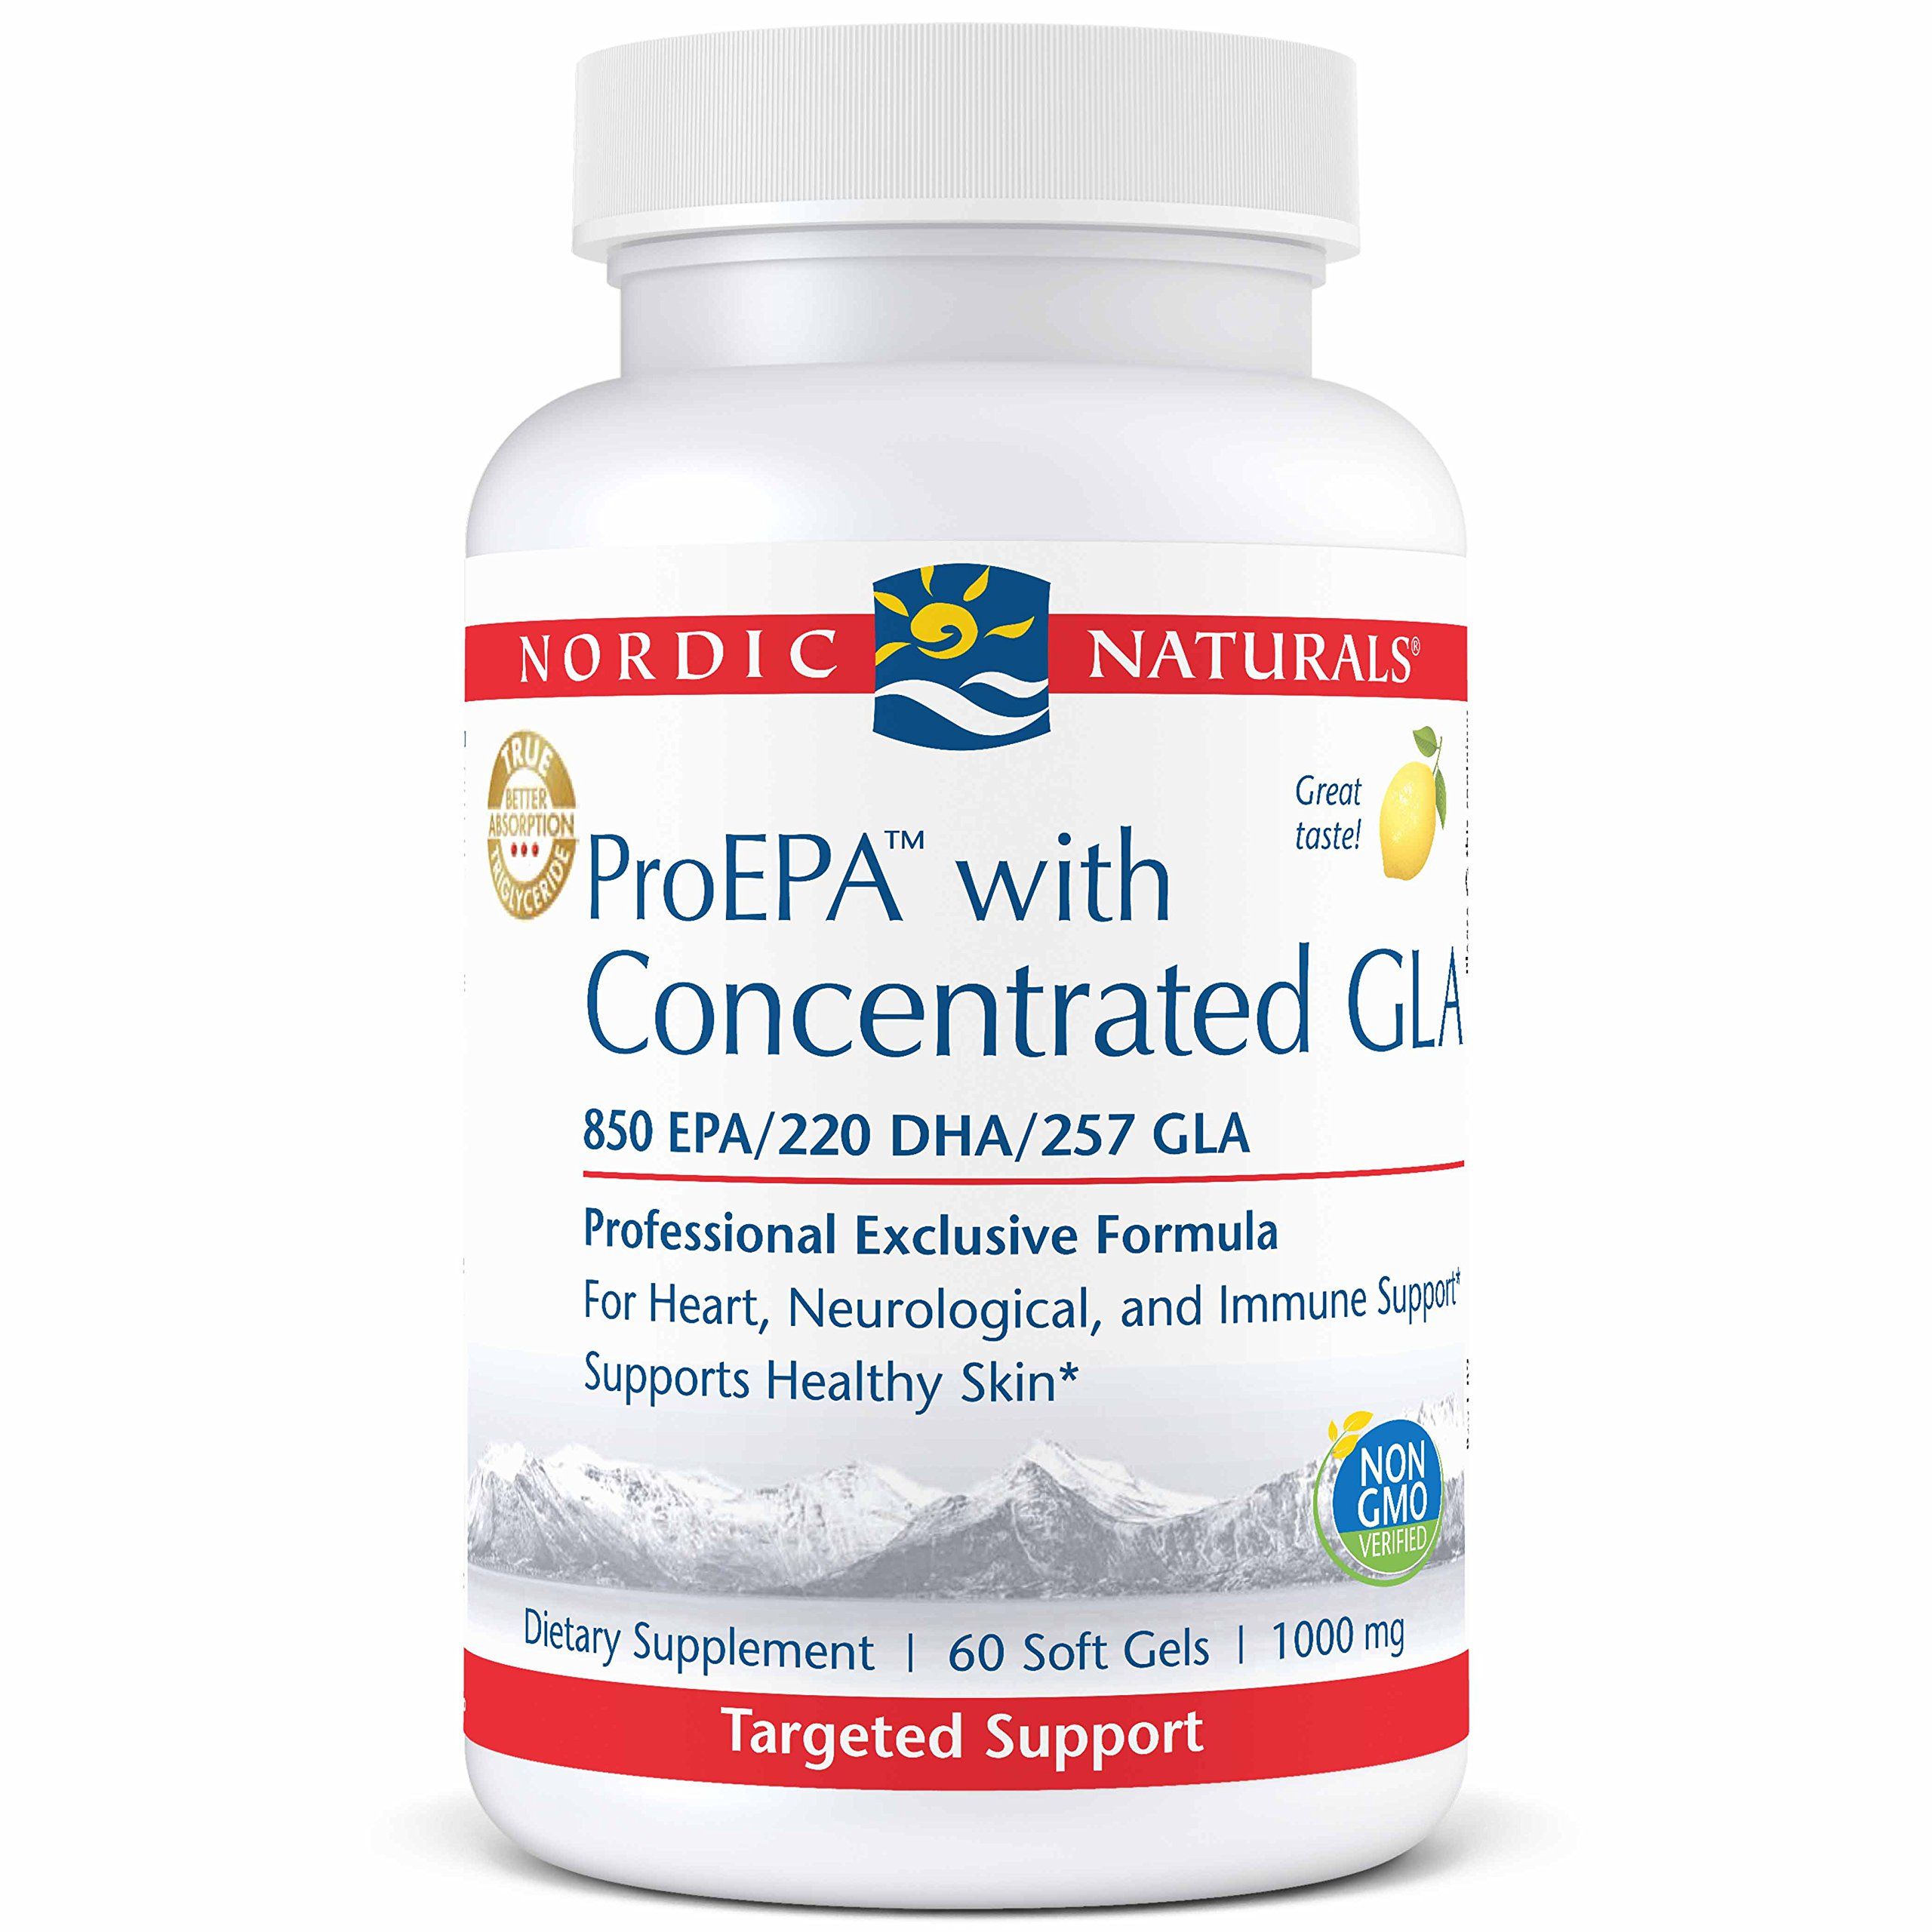 Nordic Naturals ProEPA with Concentrated GLA - Fish Oil, Borage Oil, 850 mg EPA, 220 mg DHA, 257 mg GLA, for Cardiovascular, Neurological, Joint, Skin, and Immune Health, 60 Soft Gels